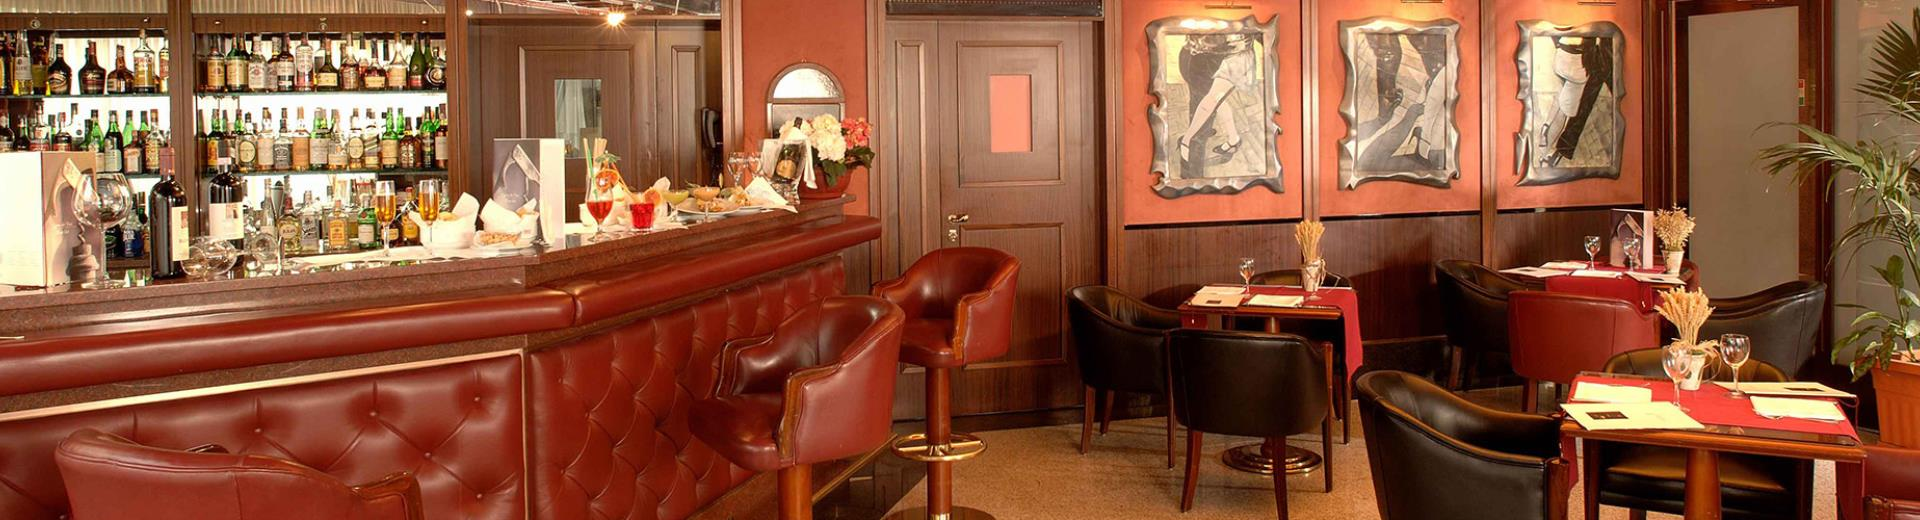 Are you looking for a hotel for your stay in Milan? Make a reservation at the Best Western Hotel Concorde